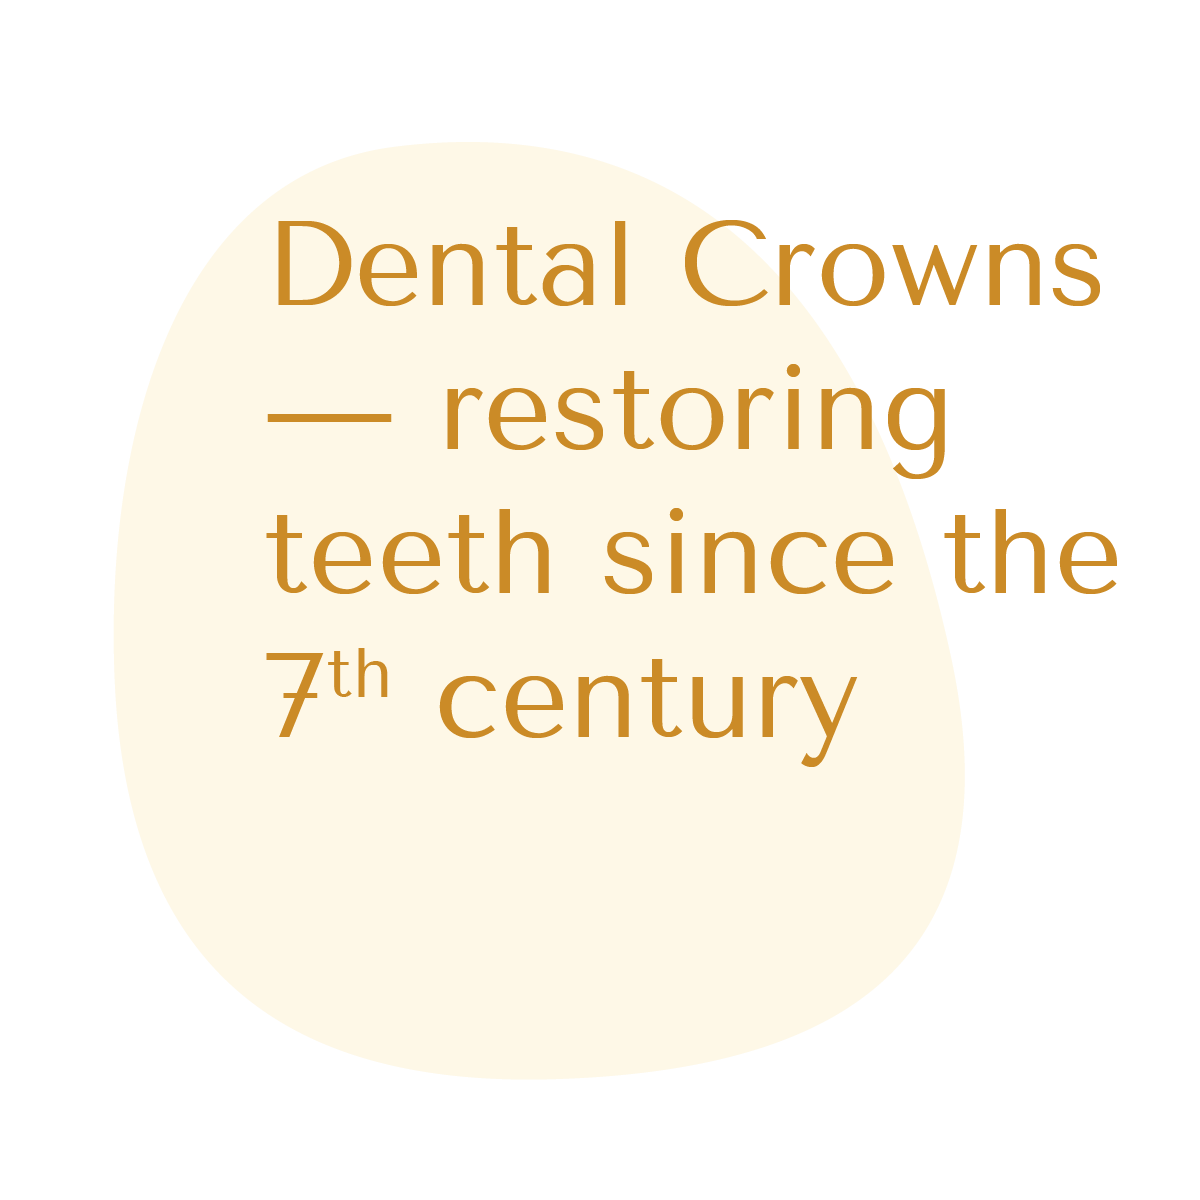 surry hills dental crown quote